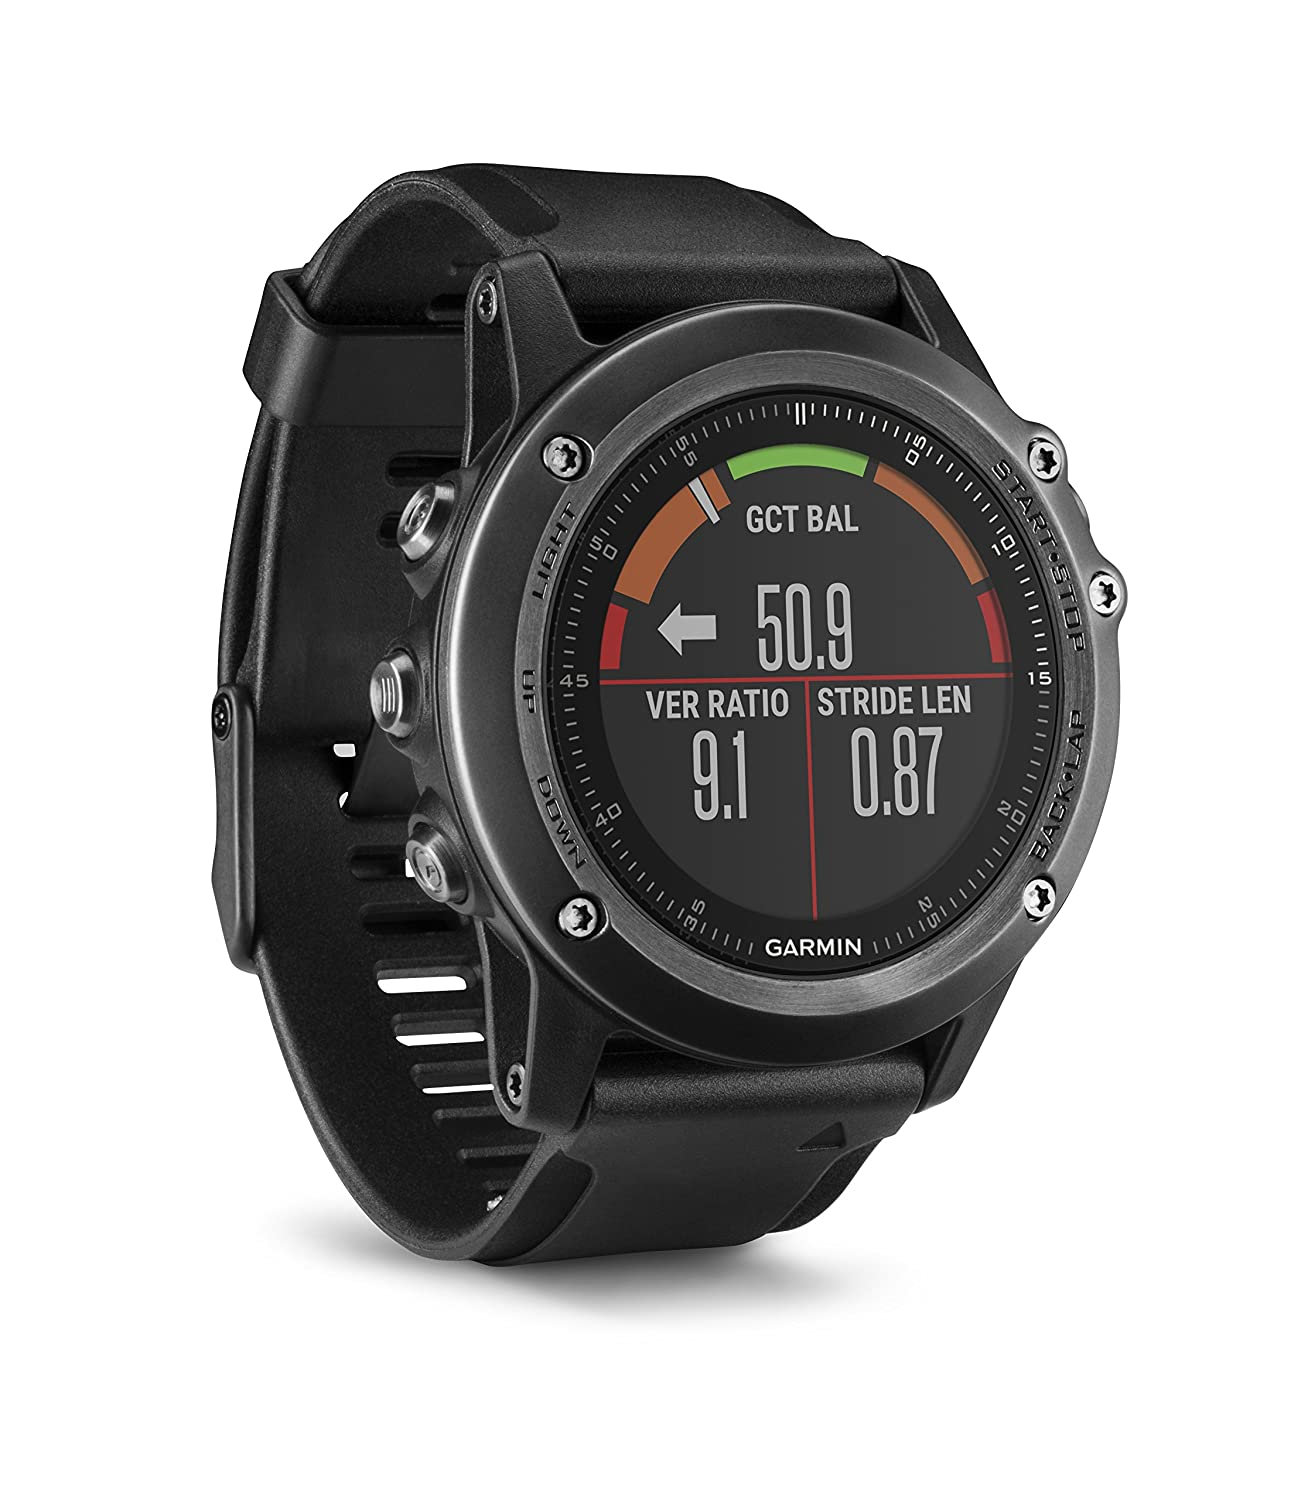 4. Garmin Fenix 3 HR